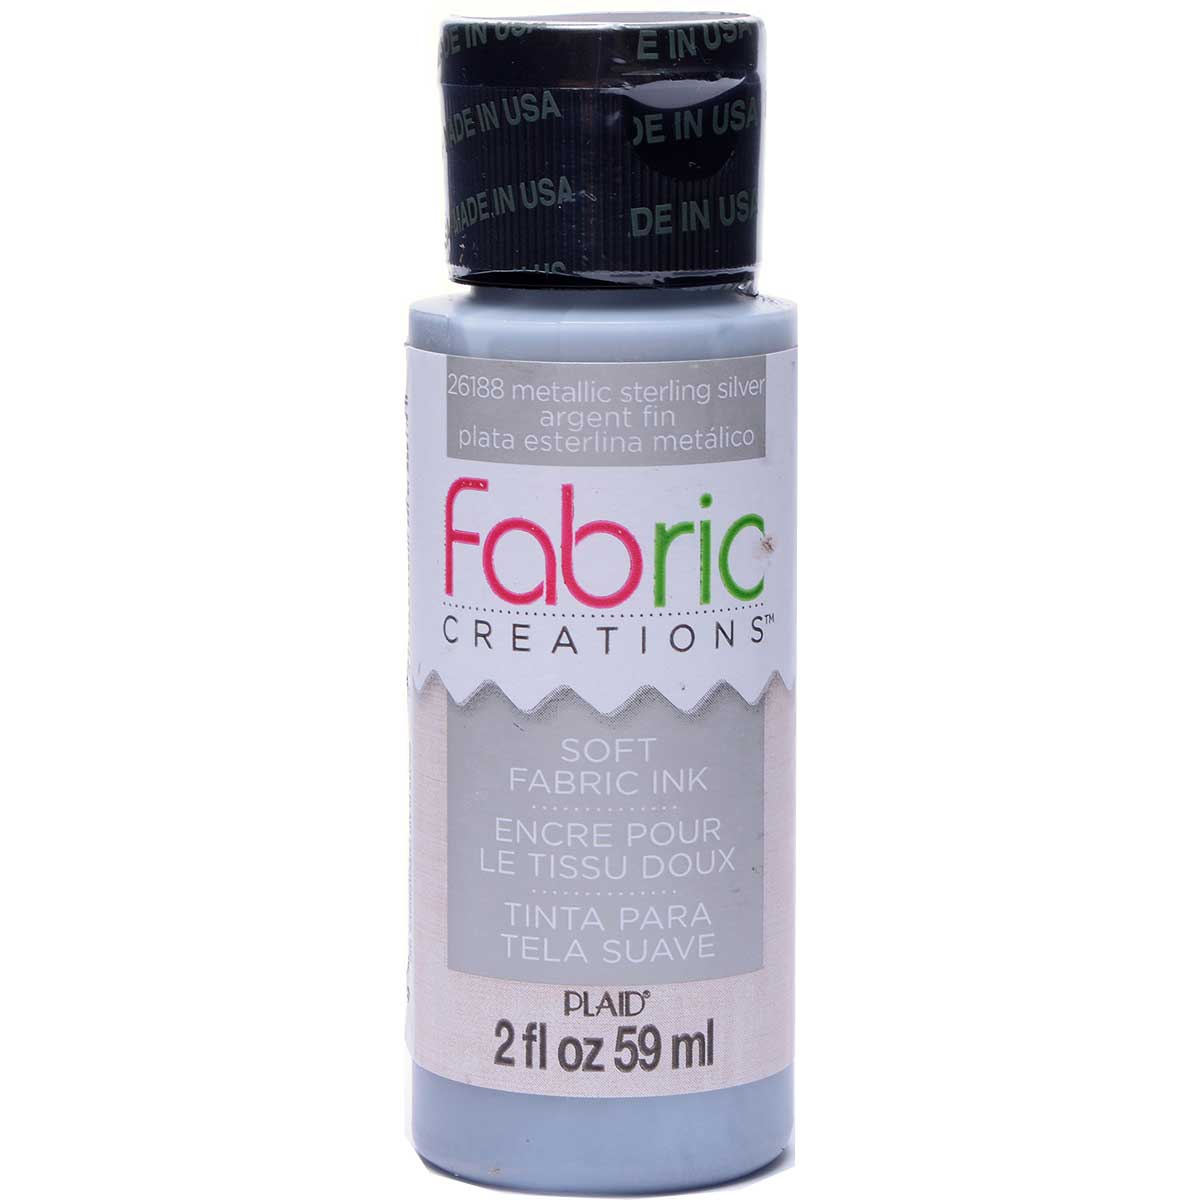 Fabric Creations™ Soft Fabric Inks - Metallic Silver, 2 oz.